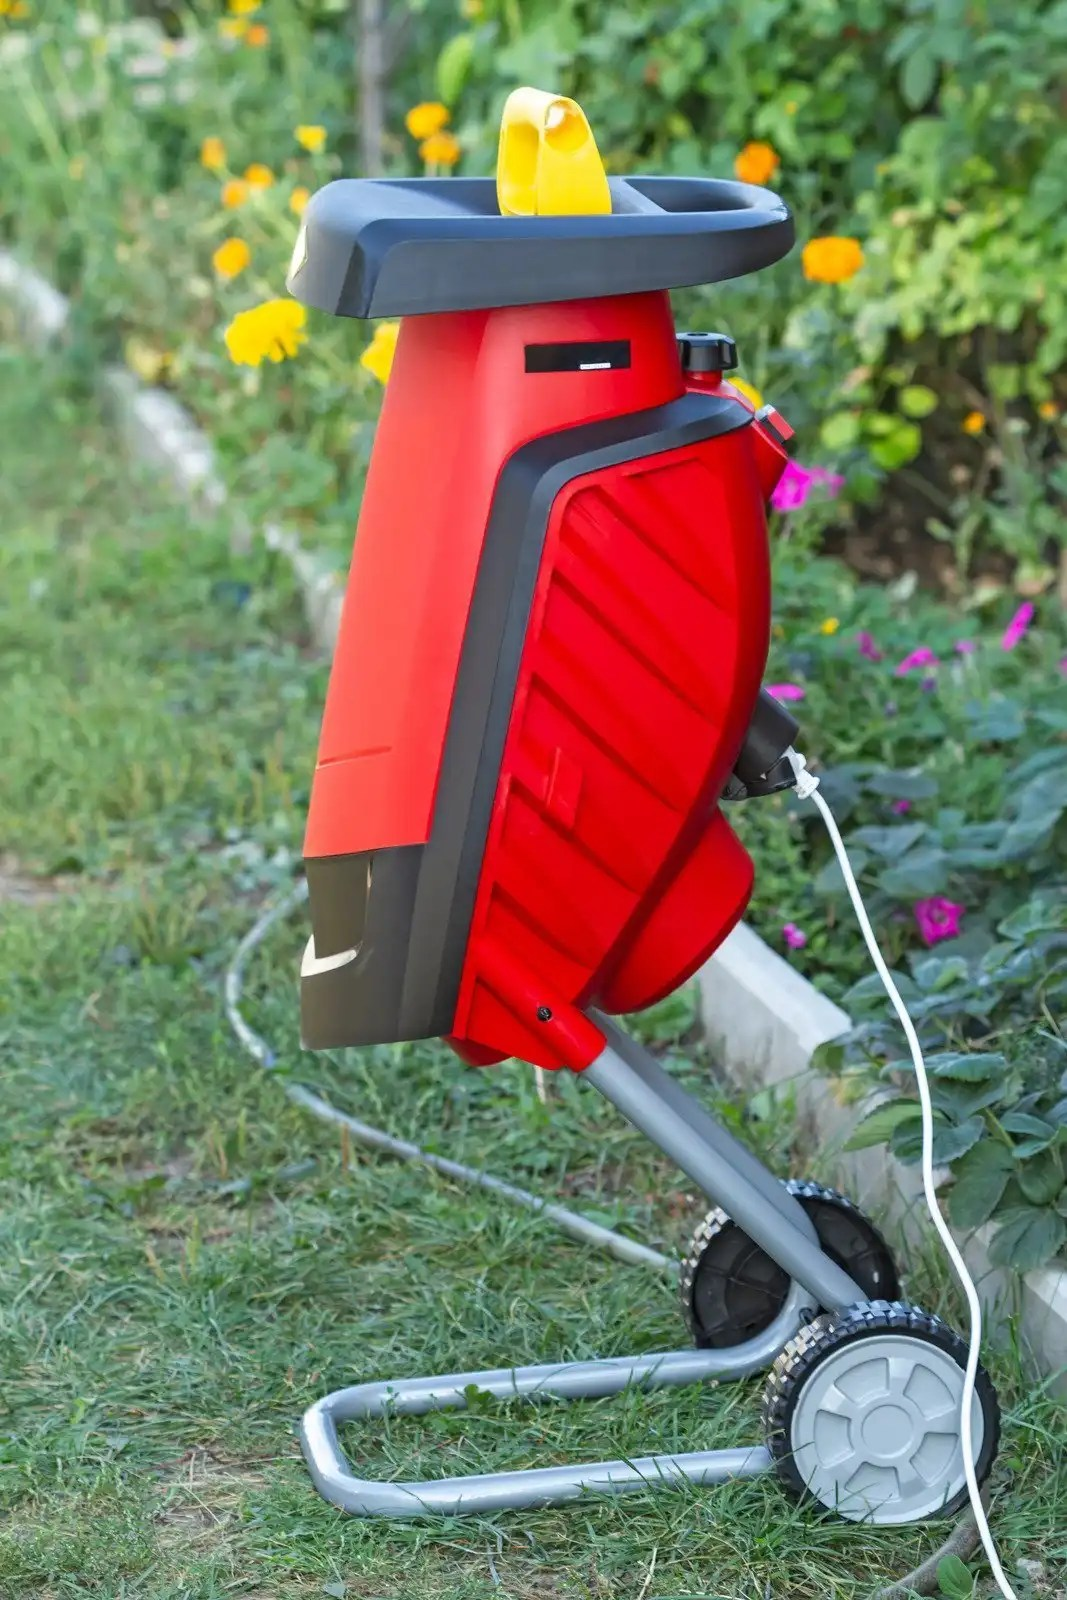 red corded electric chipper shredder